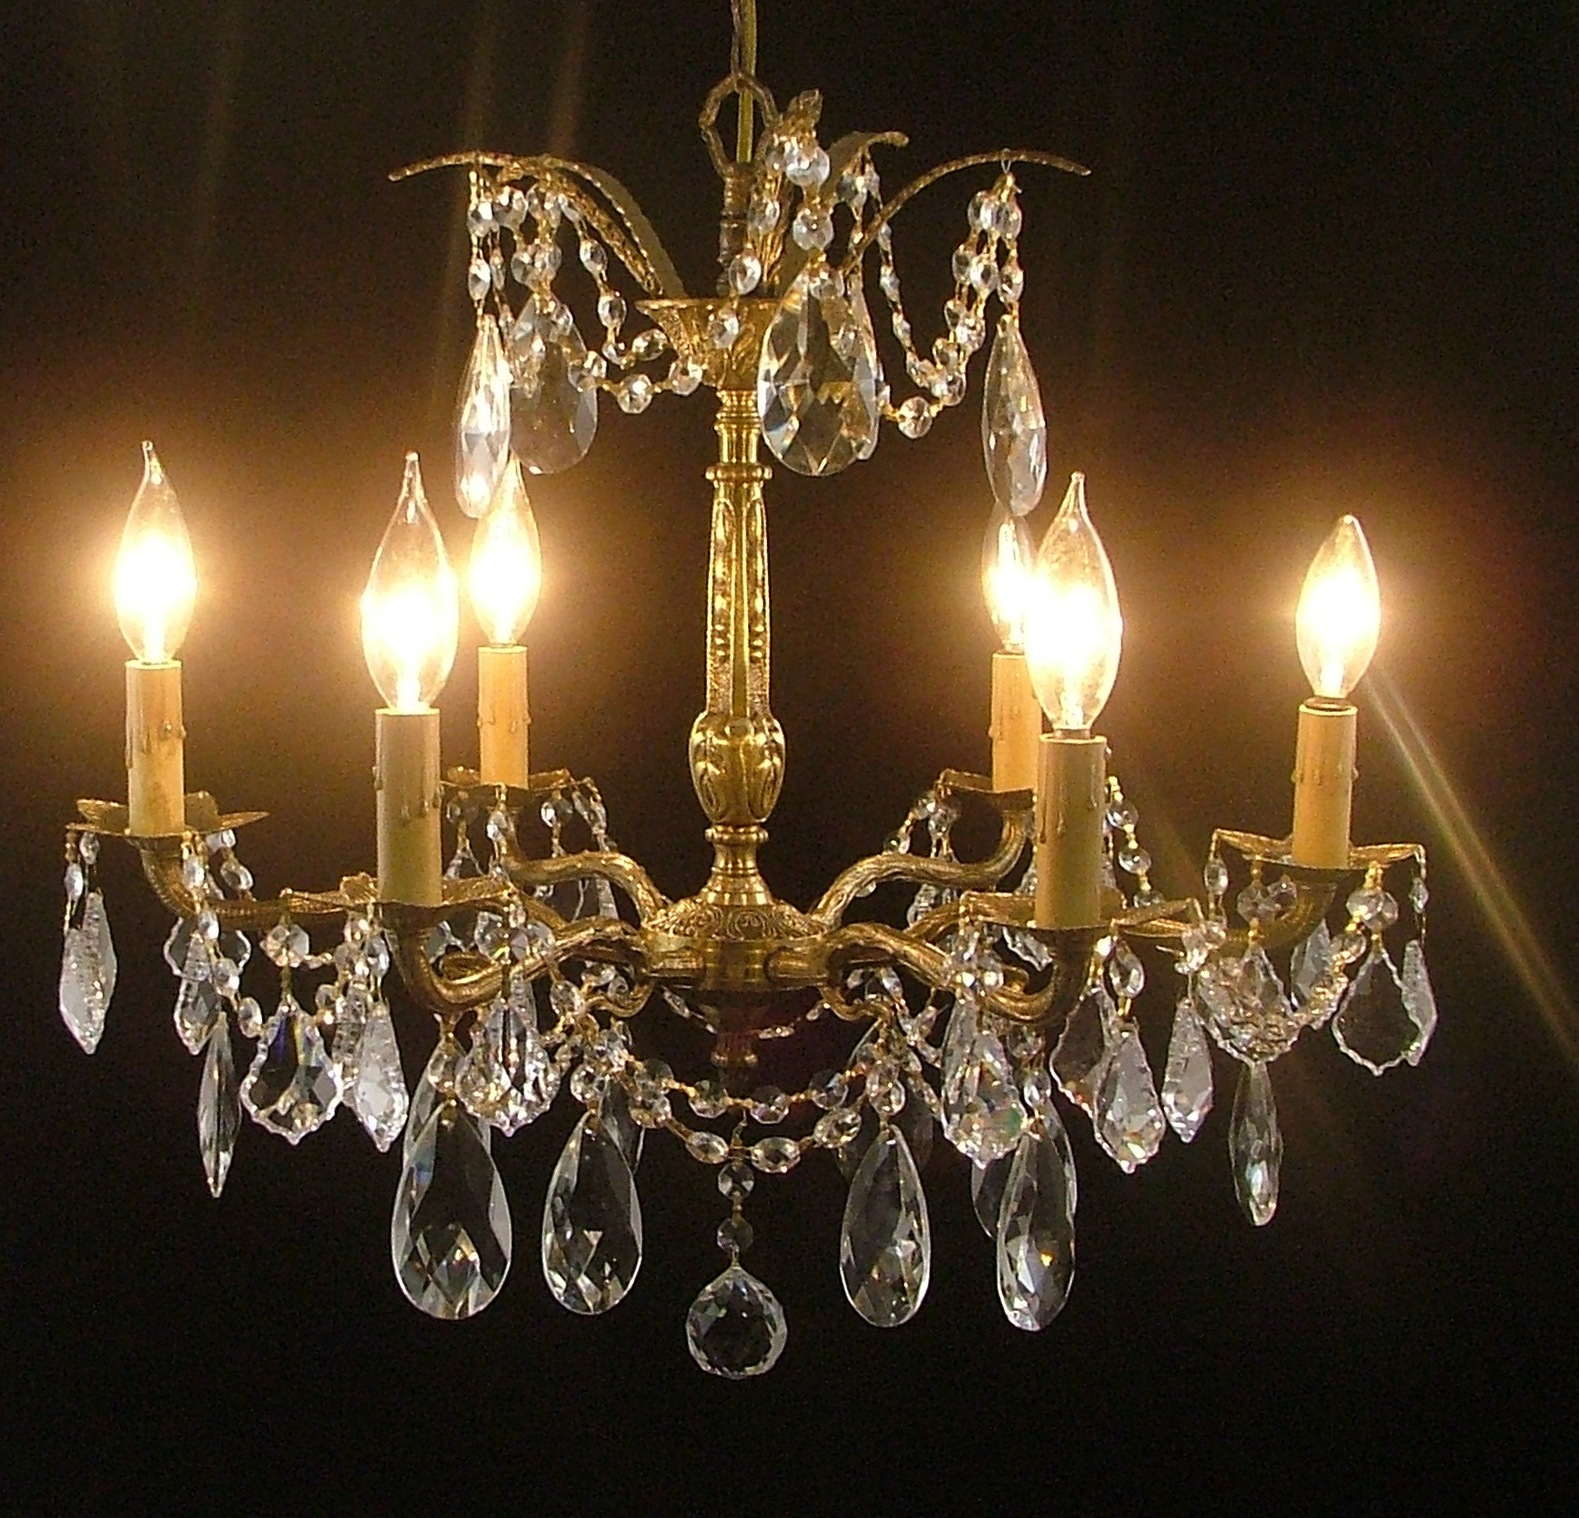 Rewiring A Chandelier : Campernel Designs